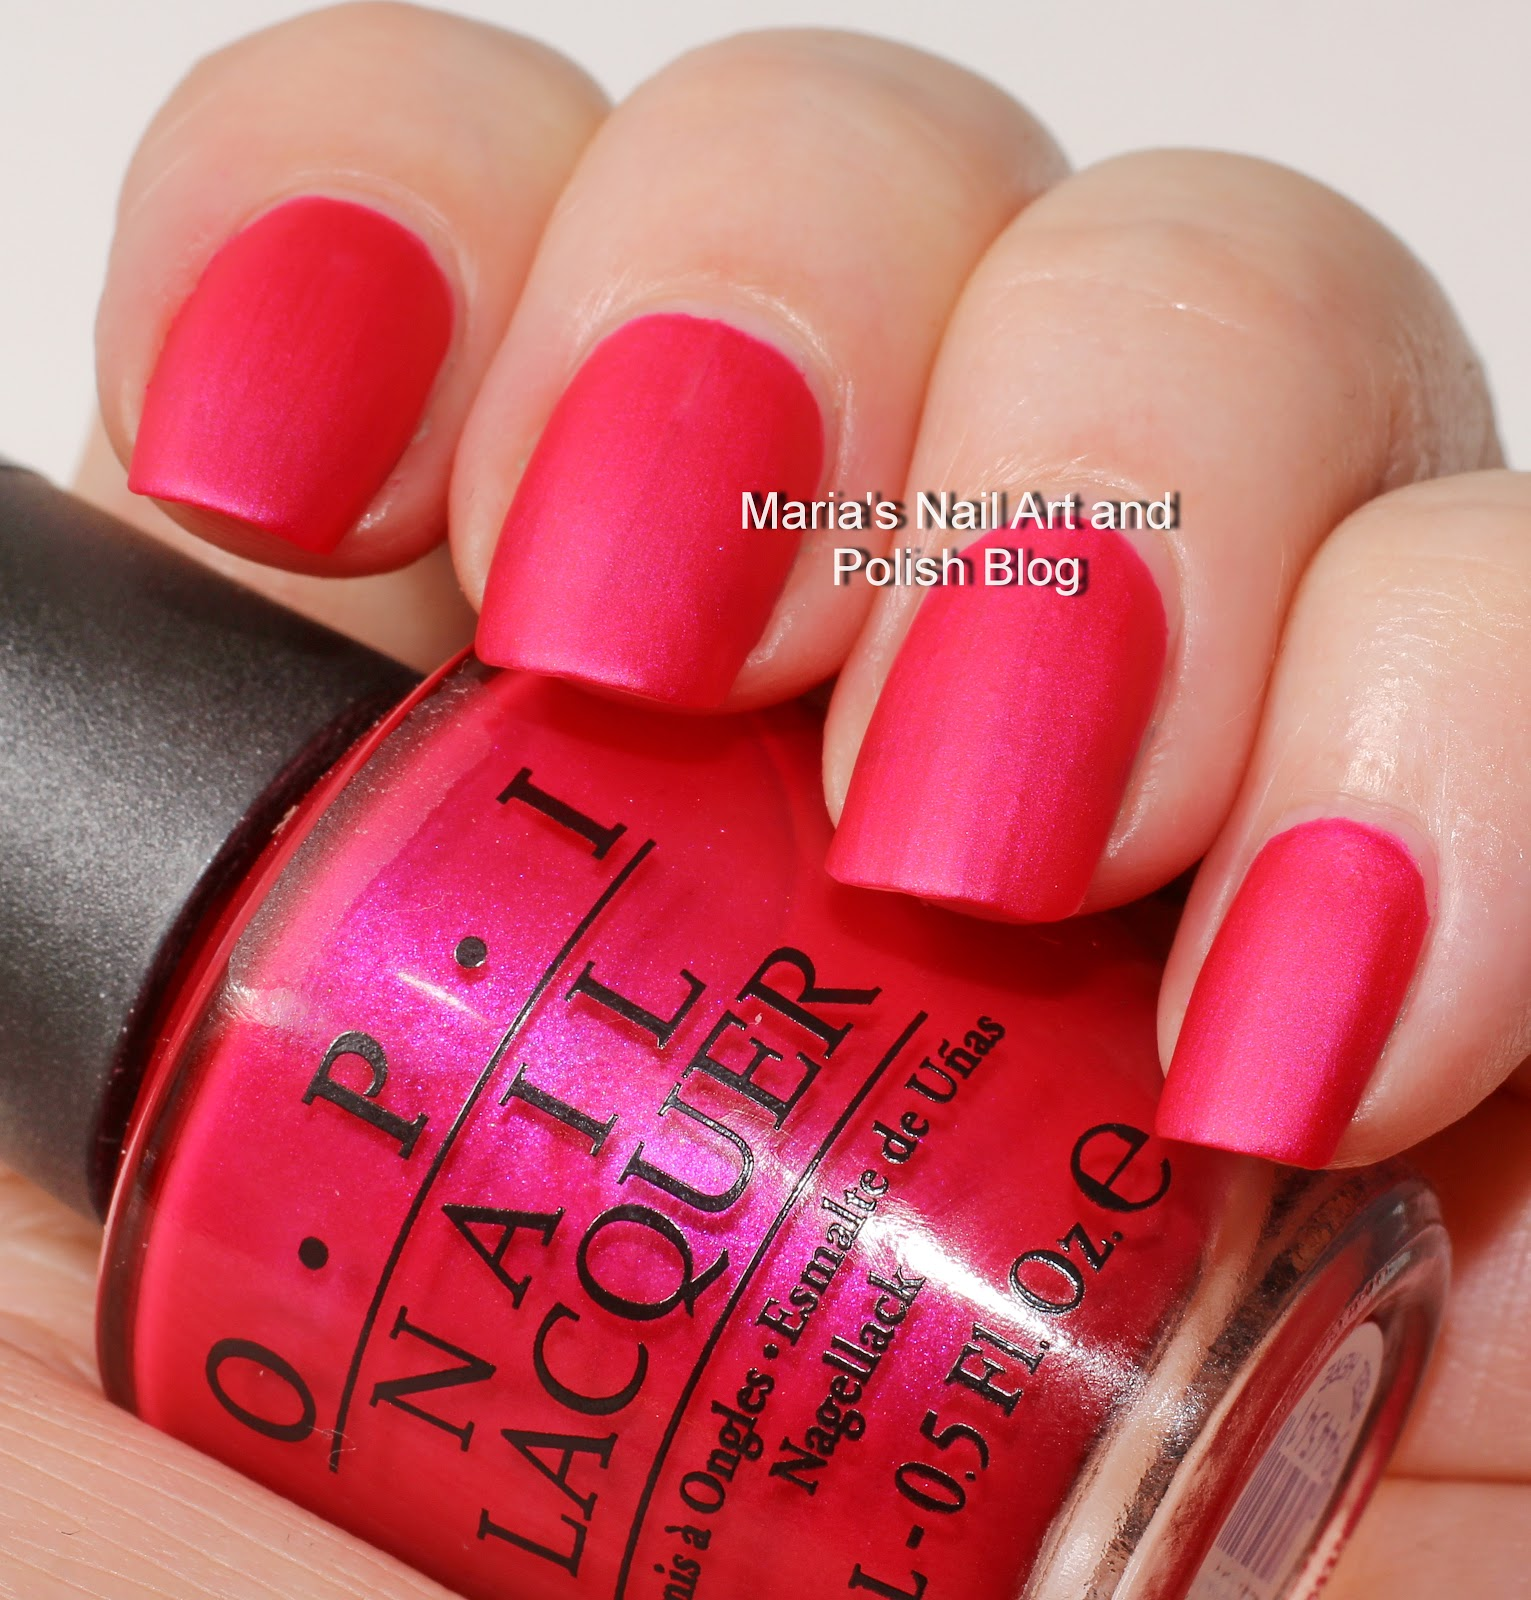 So Do You Like These Two Hot Beauties In My Opinion They Not Really Qualify To Be The Same Polish A Shiny And Matte Version Check That Out